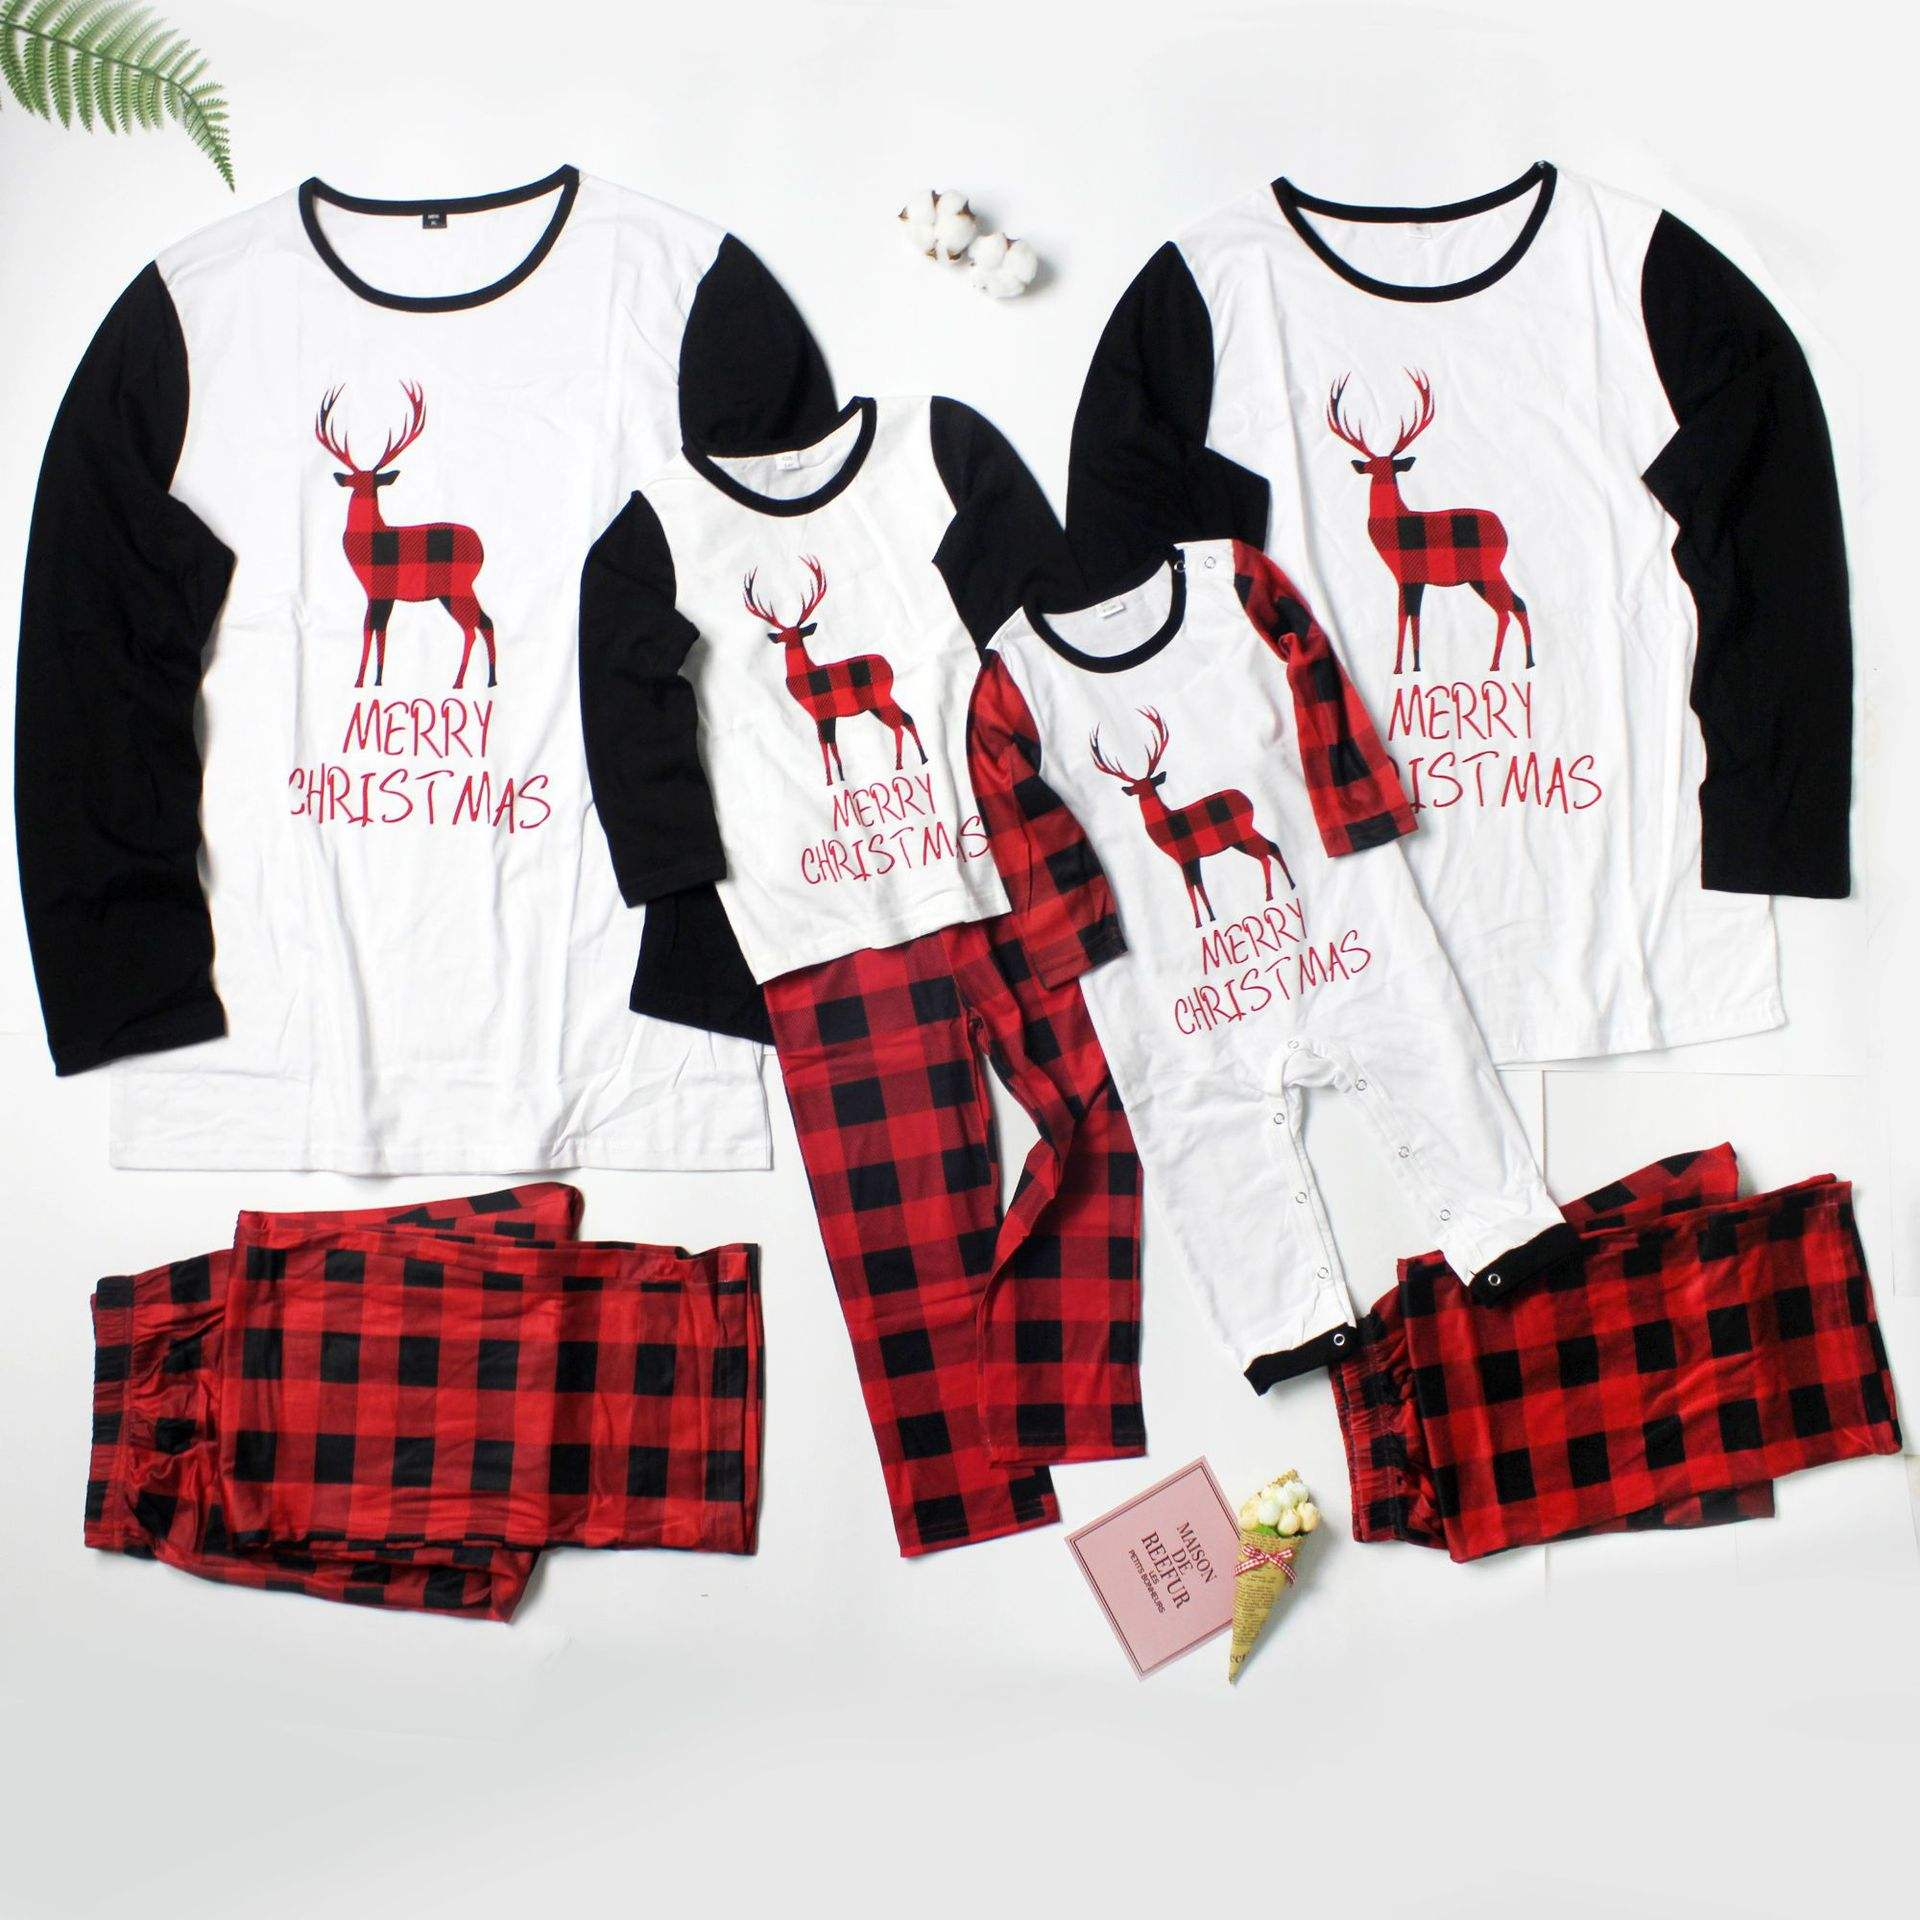 Sexy Plain Pajama Girls Set Women Super September Family Suits Fashion Whole Sales Flannel Matching Christmas Pajamas For Couple